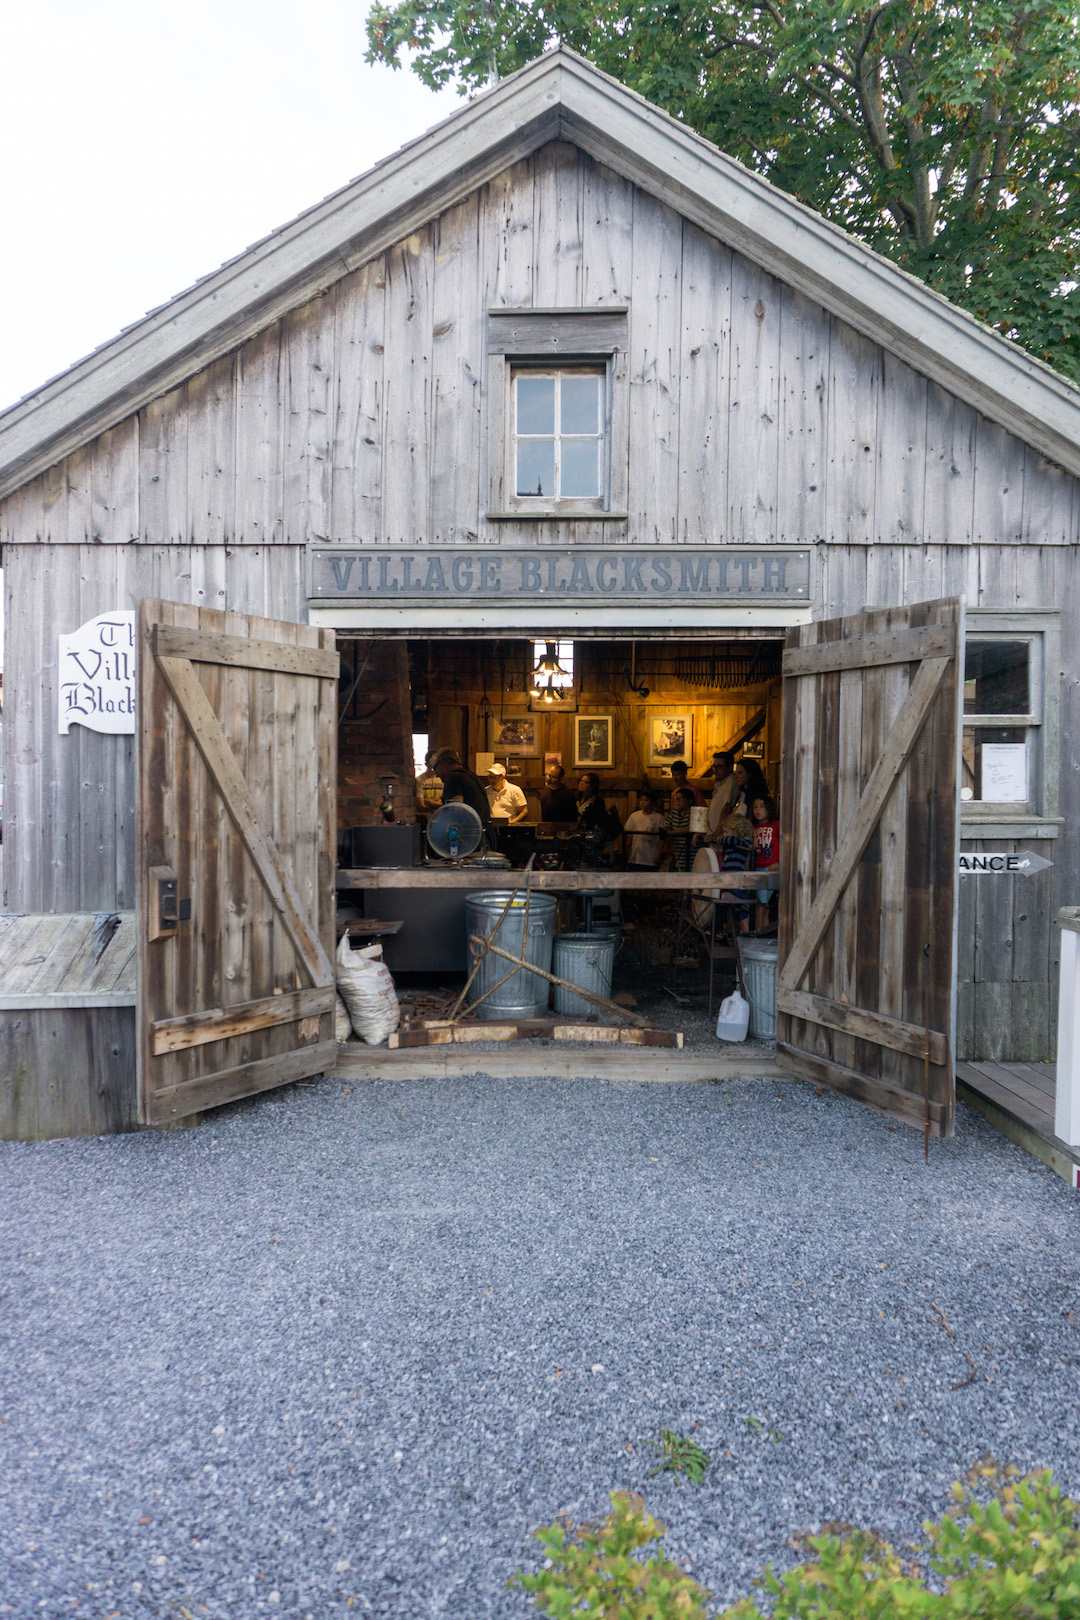 The Village Blacksmith in Greenport Long Island